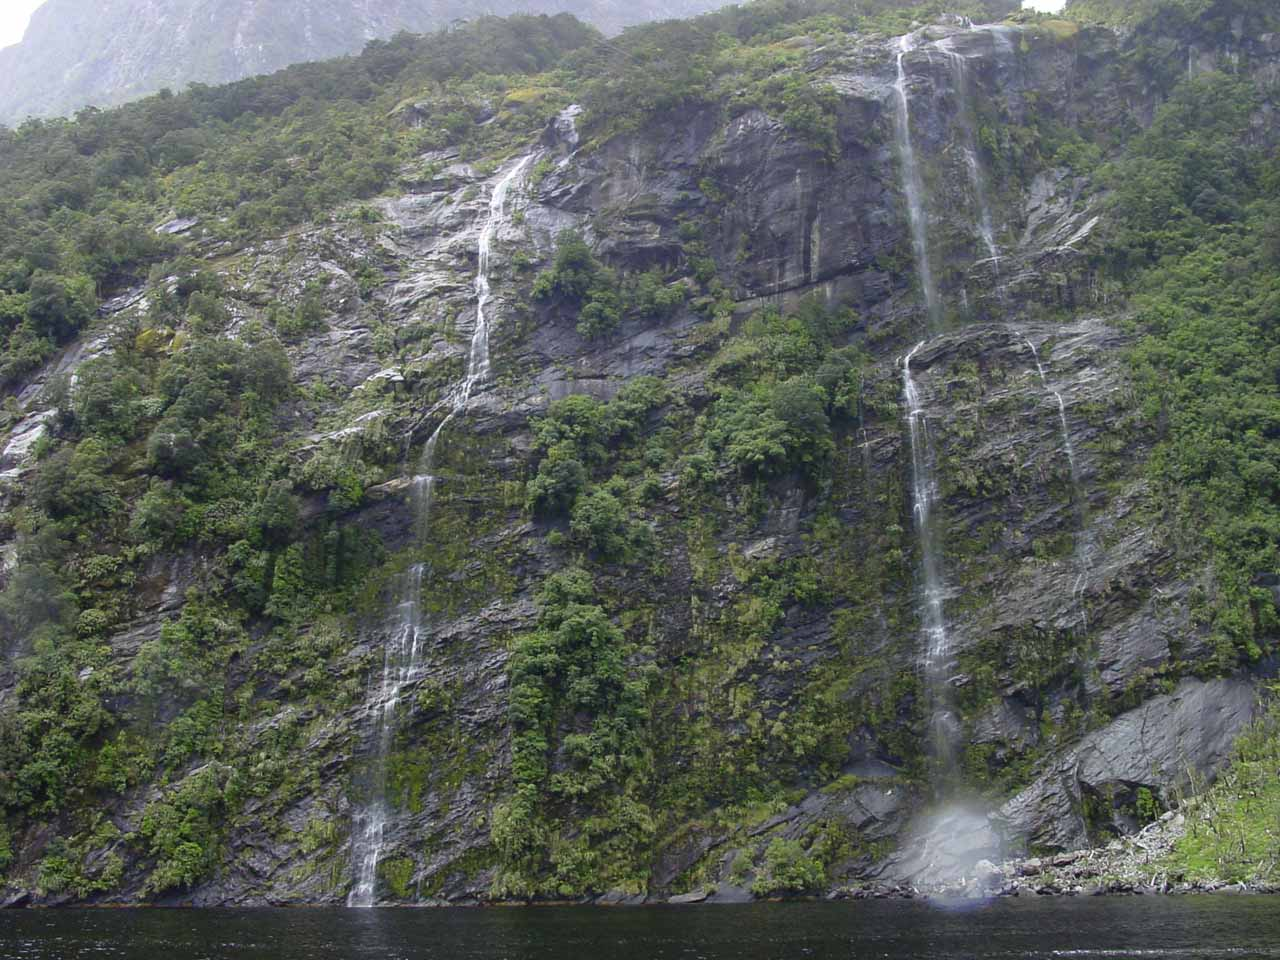 Another pair of ephemeral waterfalls spilling into Doubtful Sound